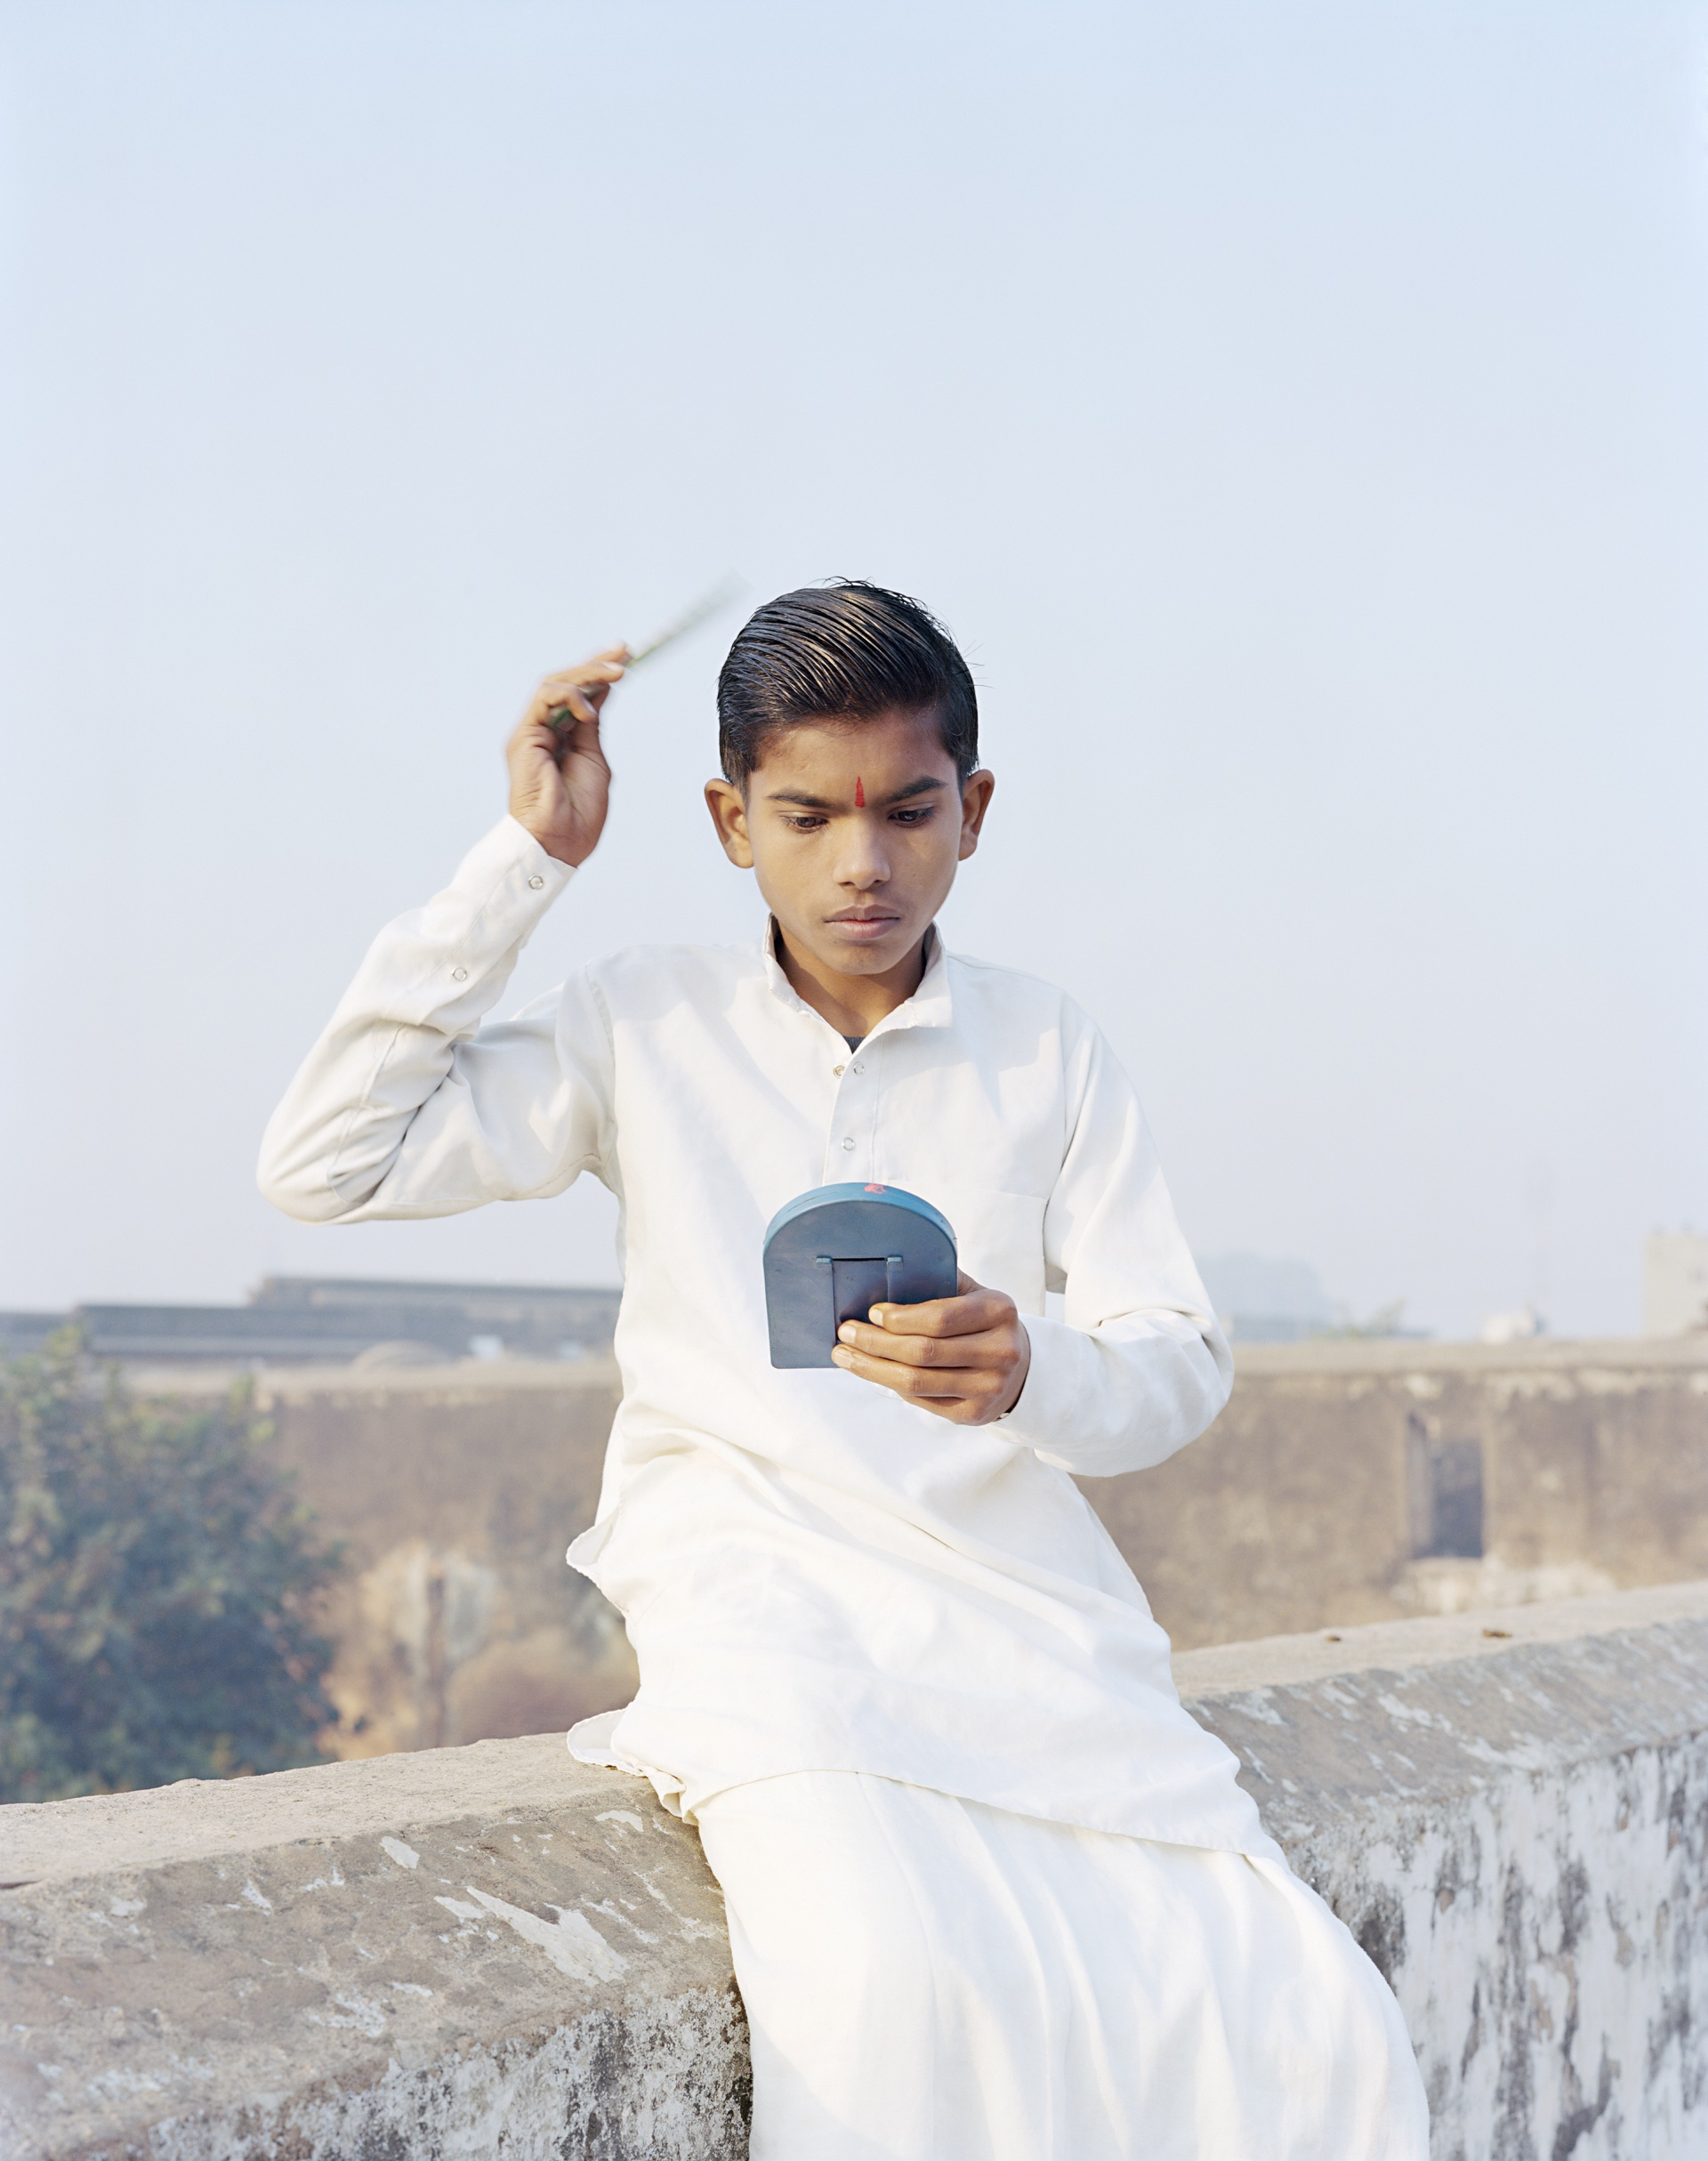 Rama Combing His Hair Ayodhya, India, 2015 ©Vasantha Yogananthan